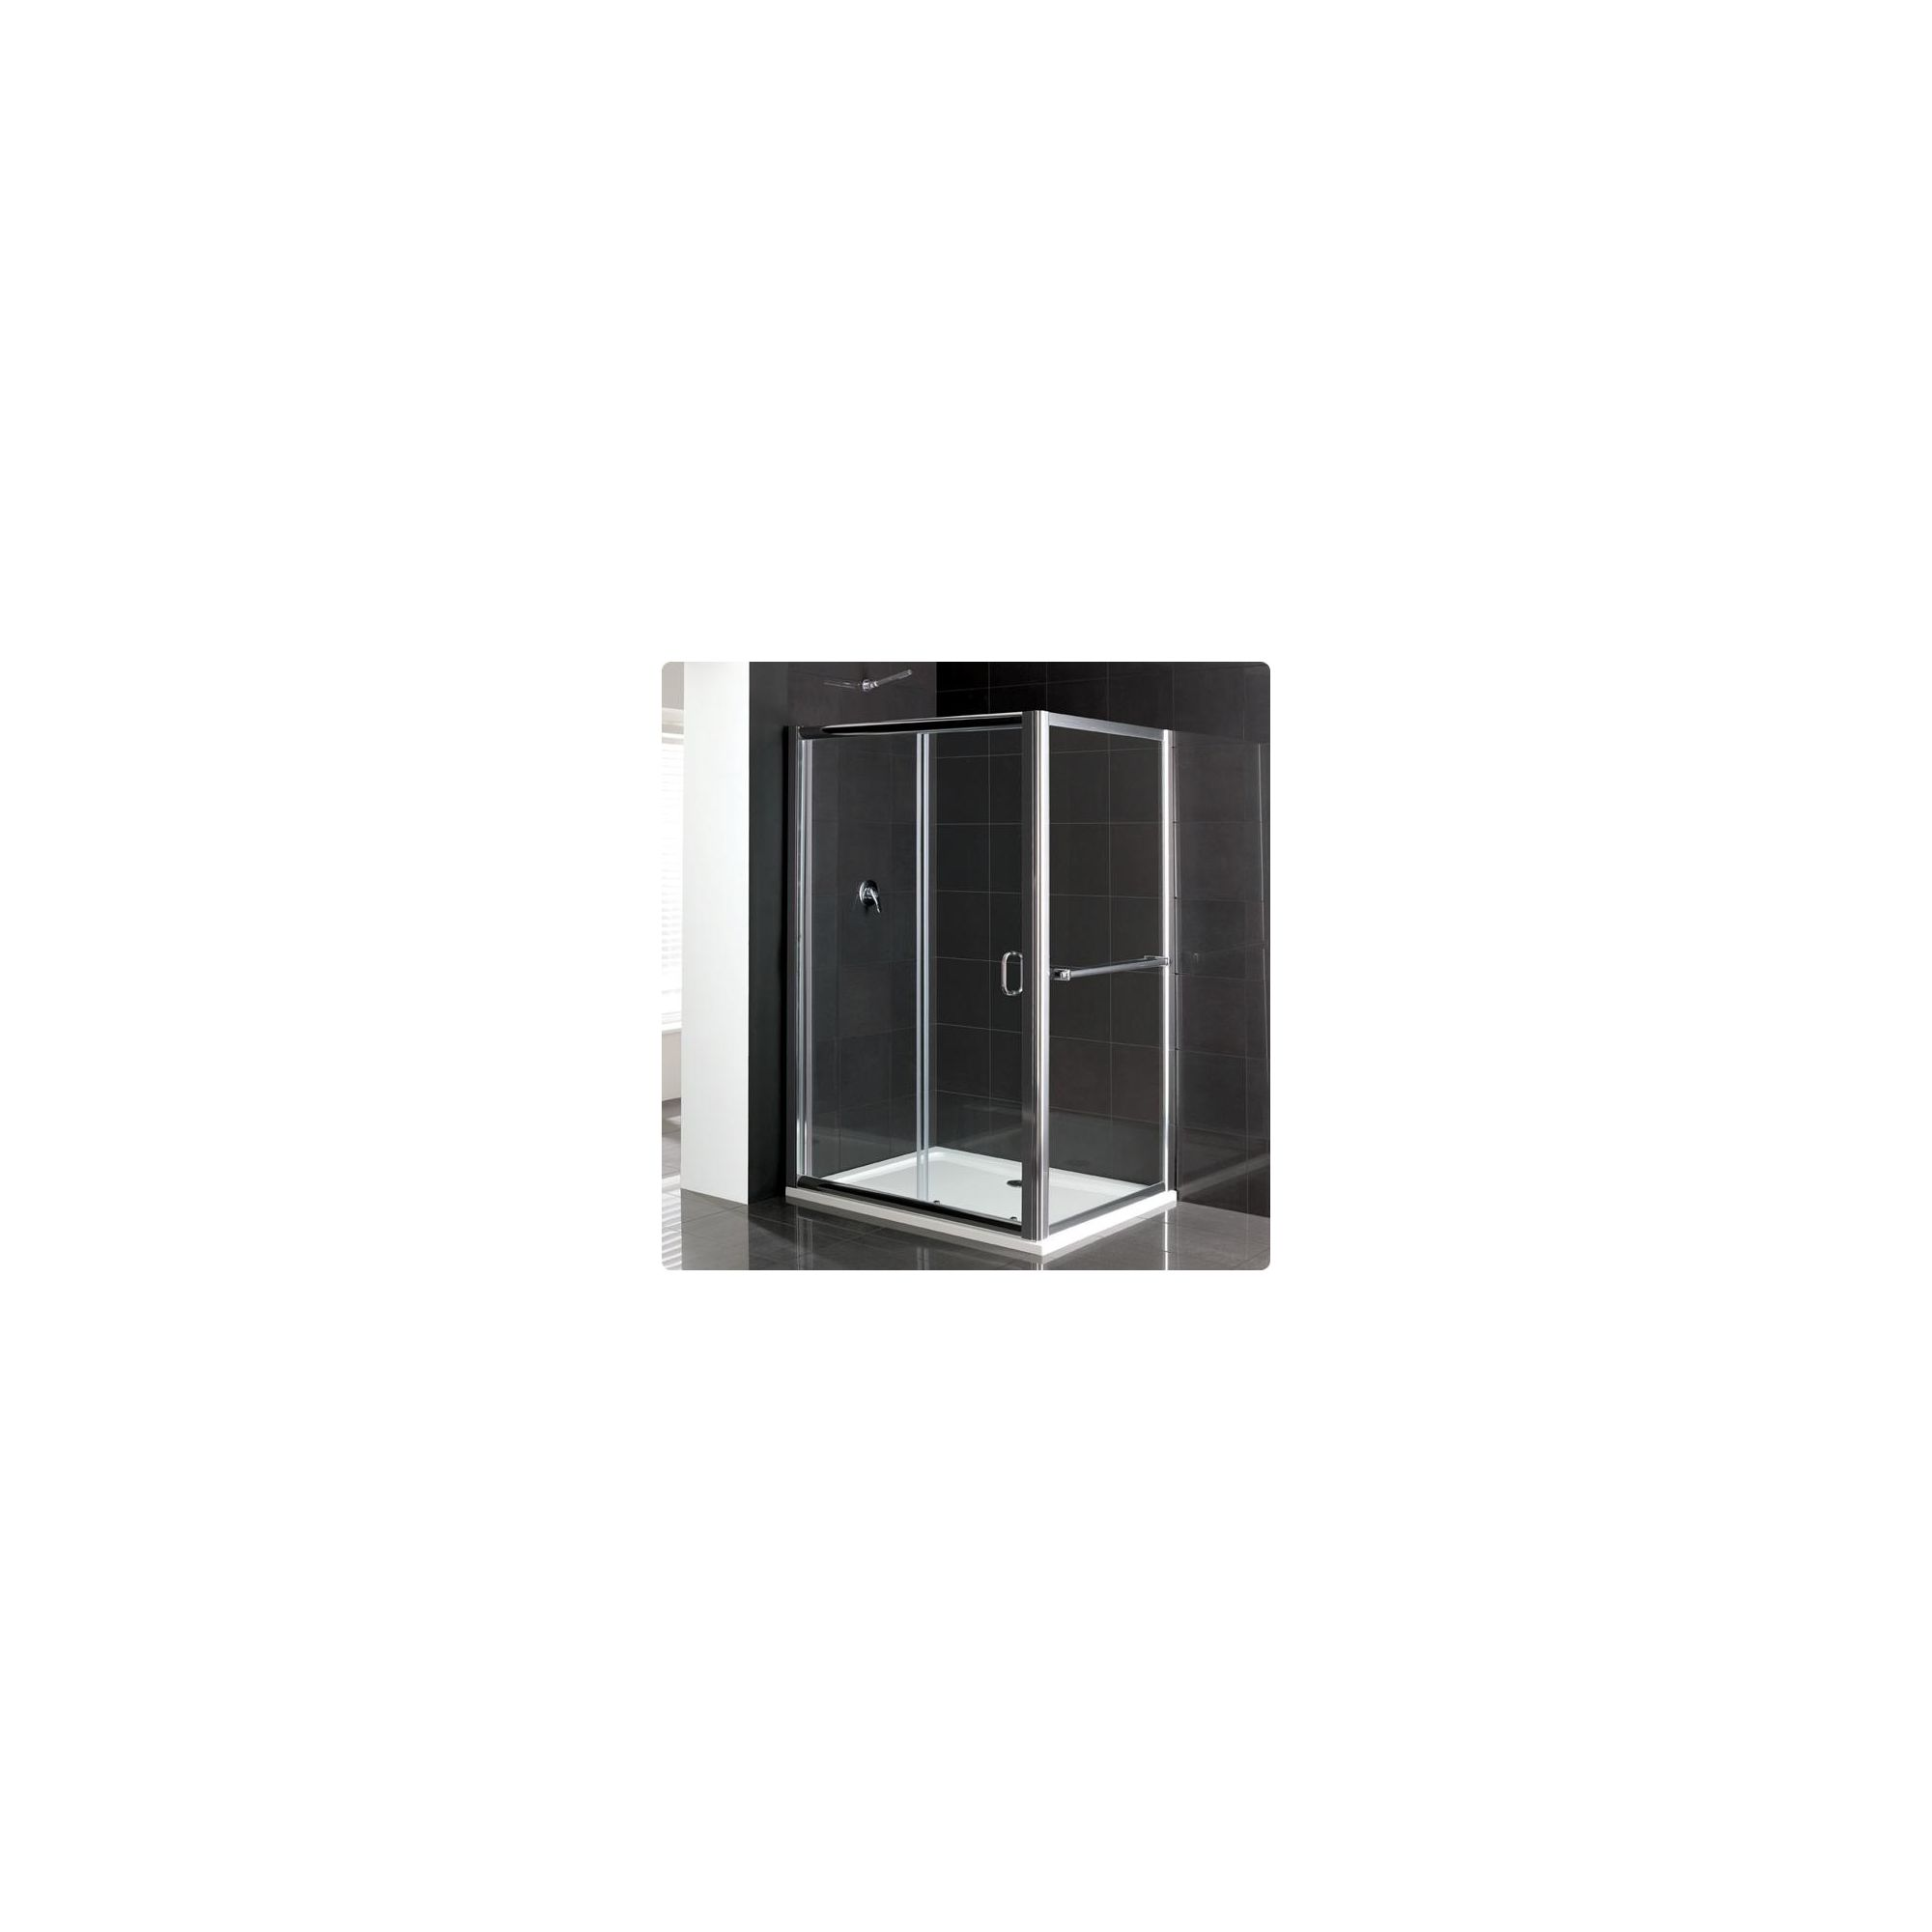 Duchy Elite Silver Sliding Door Shower Enclosure, 1600mm x 700mm, Standard Tray, 6mm Glass at Tesco Direct